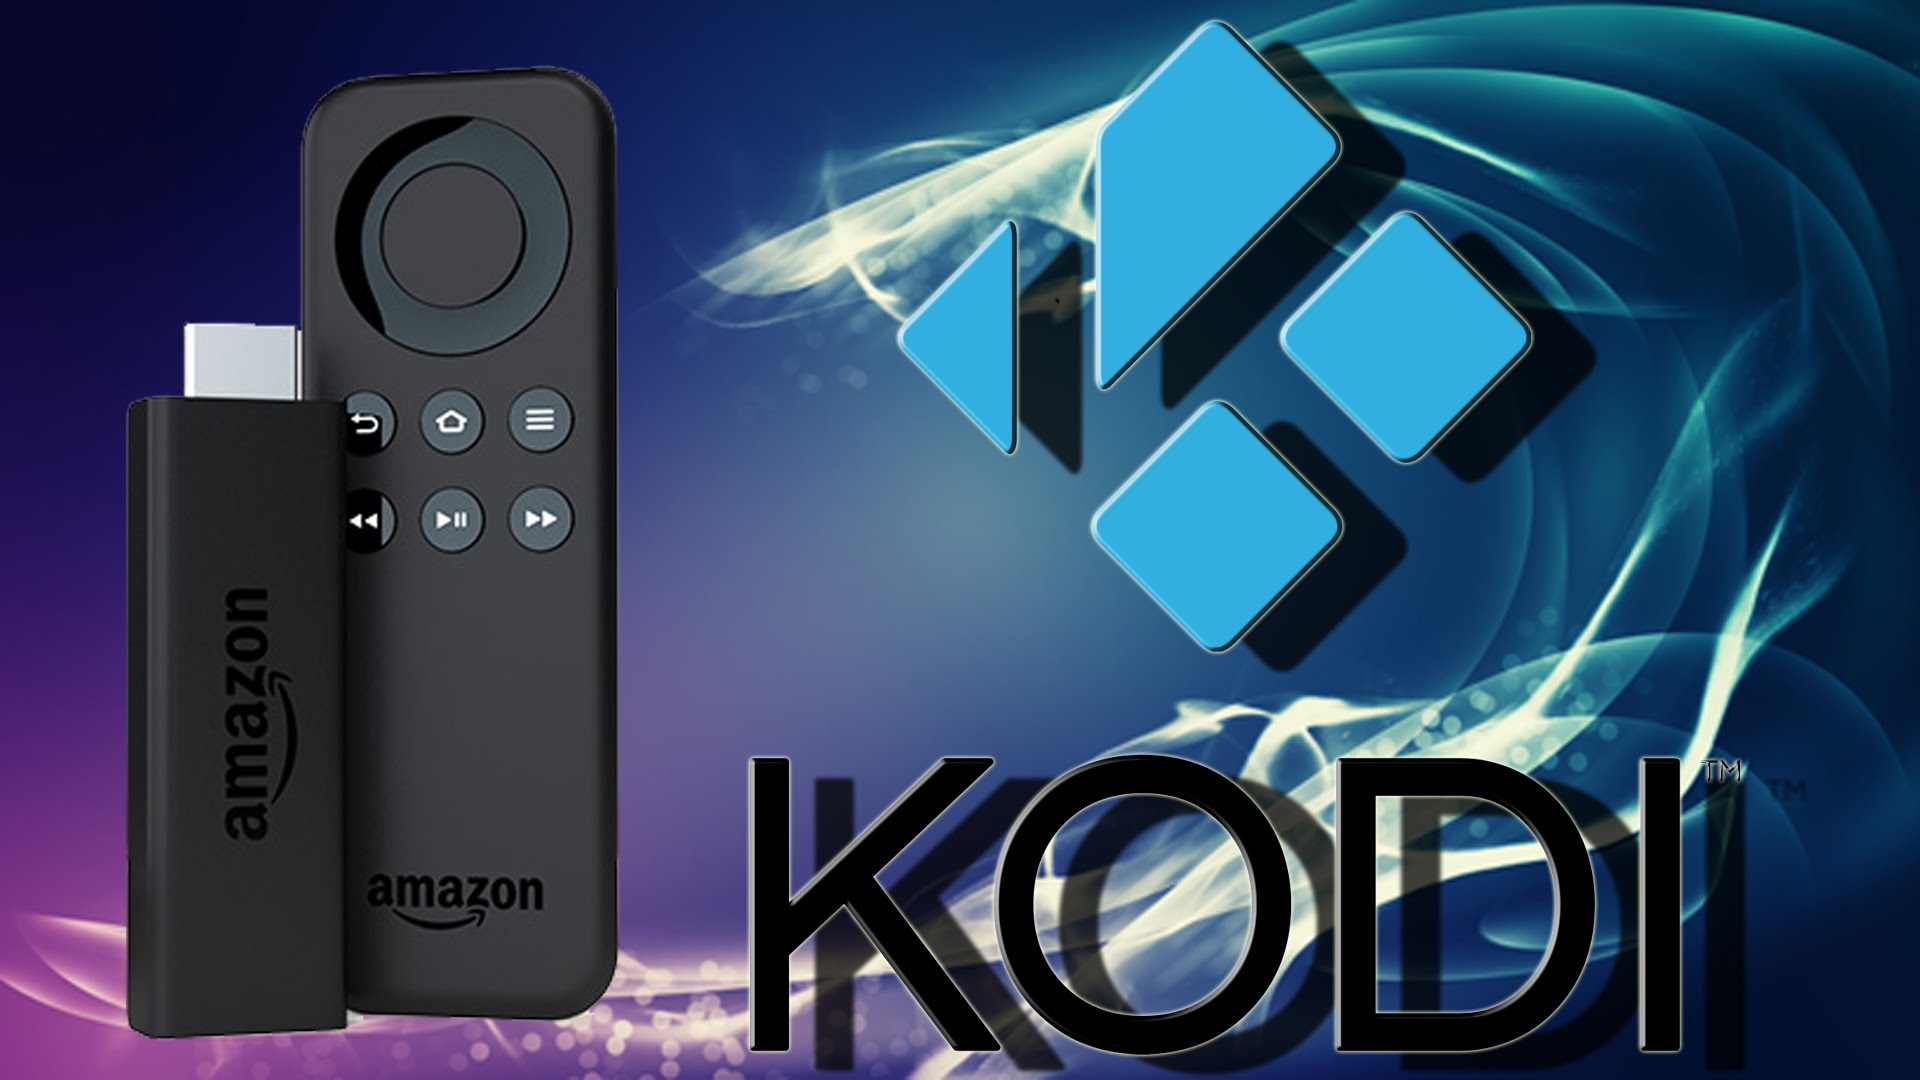 How to Install Kodi 18 Leia on Firestick? [WORKING] | Tech Prison